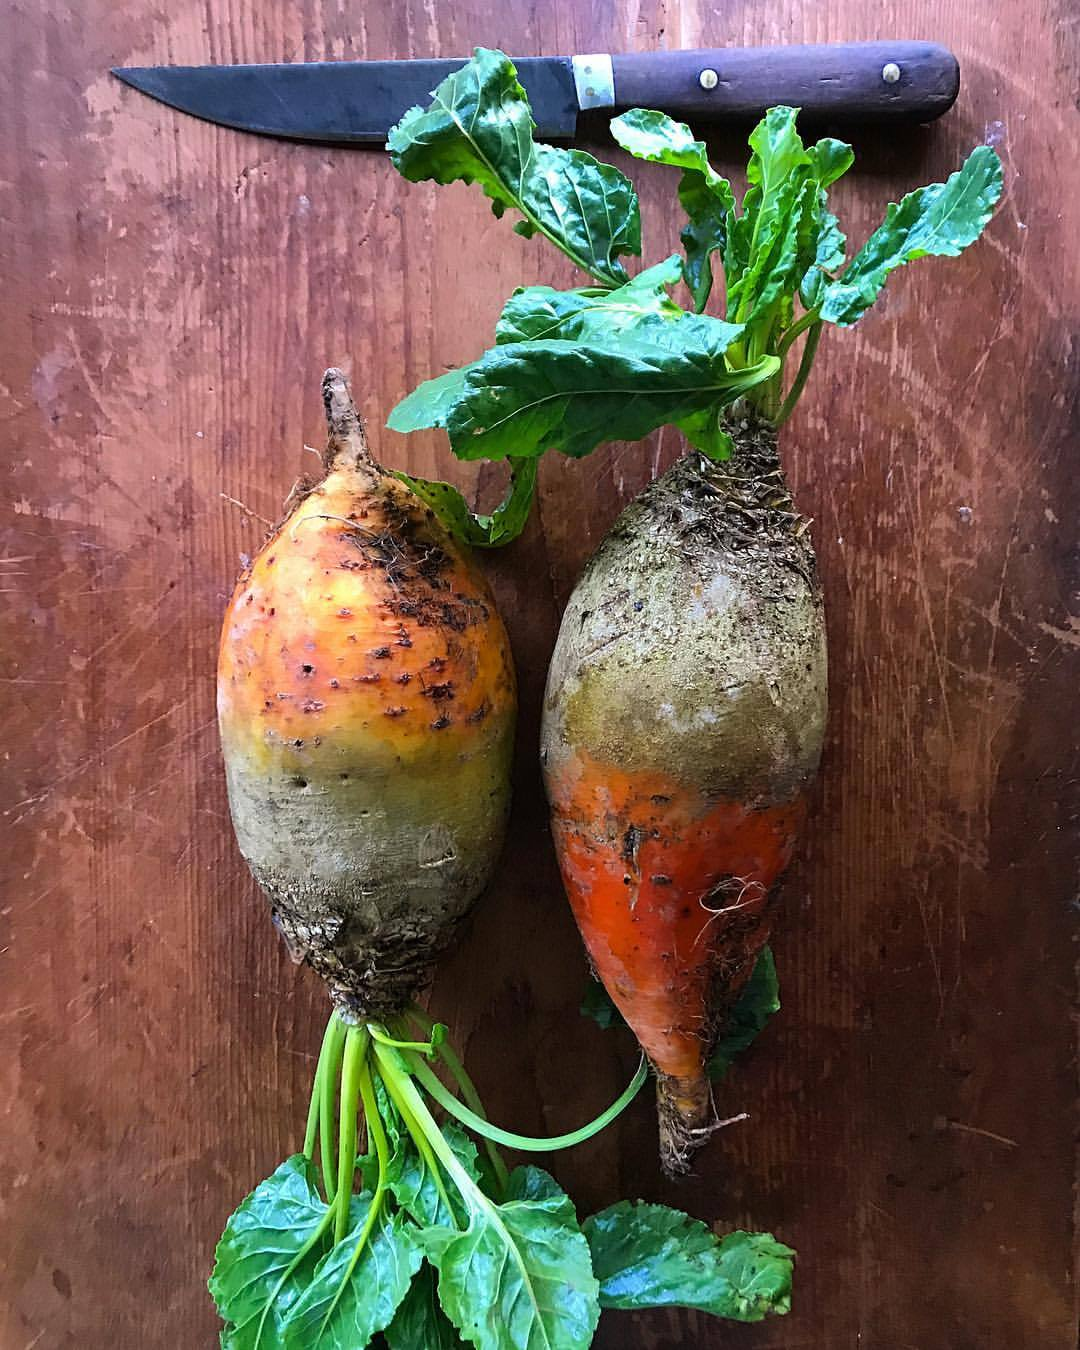 Golden beets  the size of a fat toddler's forearm  buried in smoky wood coals  peeled and sliced thin,  topped with a schmear   of crème fraîche   spiked with shaved horseradish root.  -  #vegetables #woodoven #beets #sundaydinner  (at At Home in Napa)